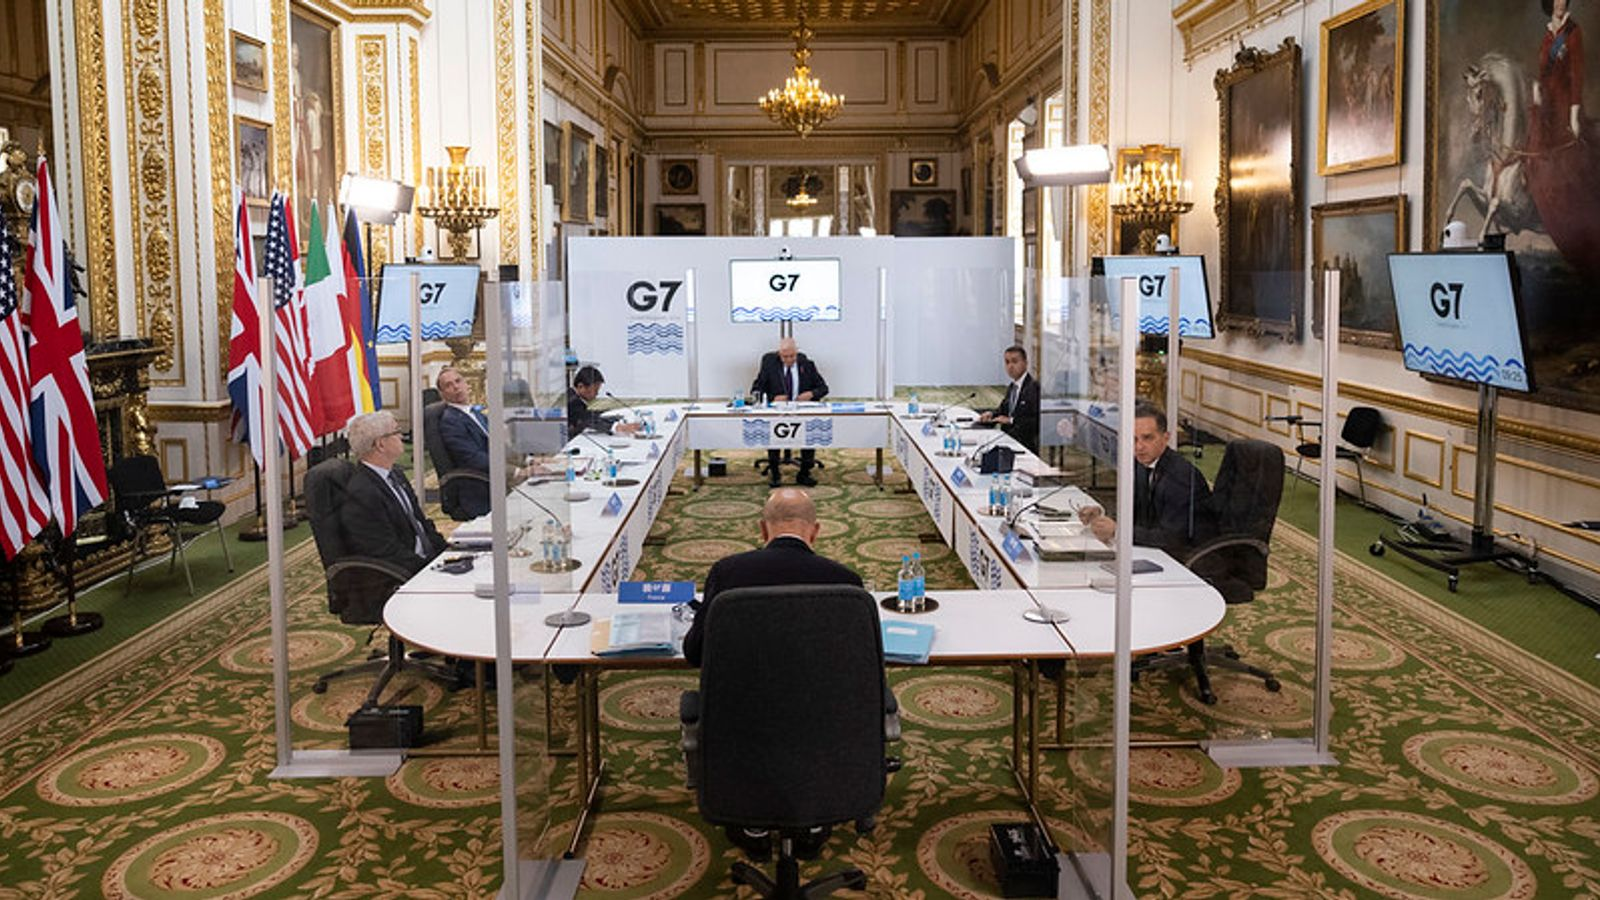 G7 nations hit out at Russia and China - but fail to establish action against them